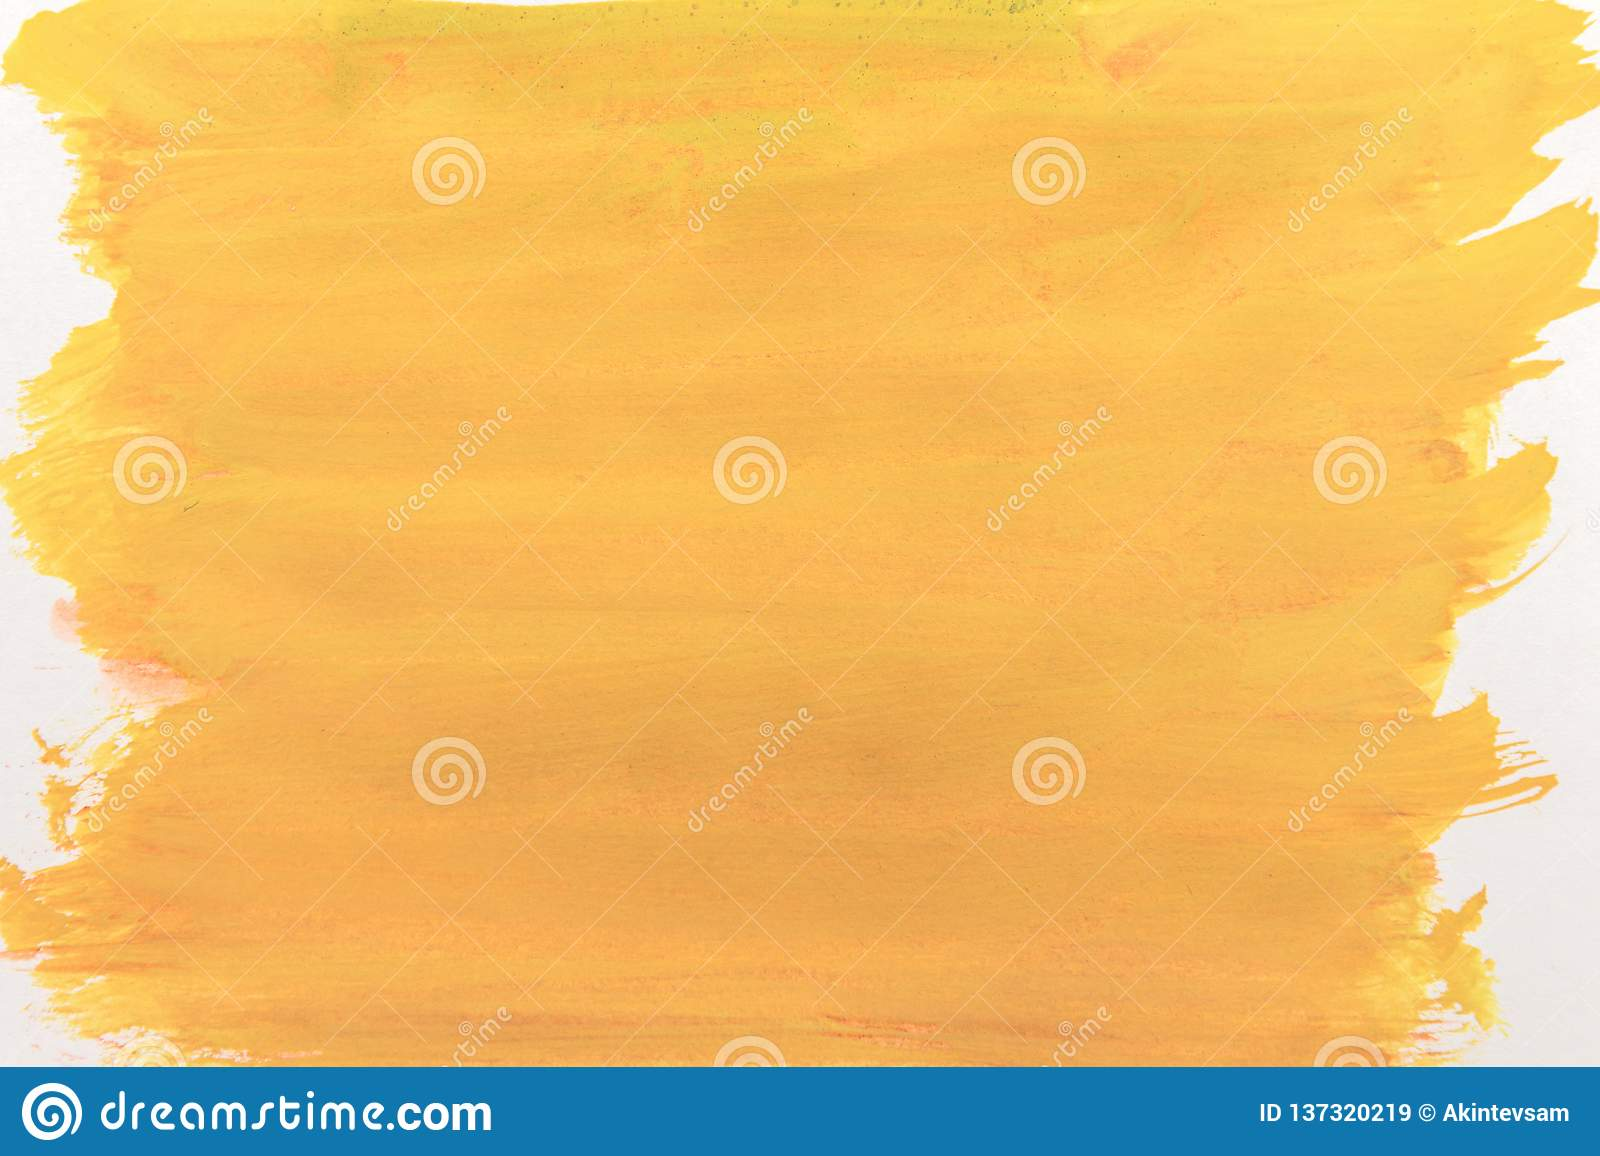 Canvas covered with bright yellow paint. abstraction